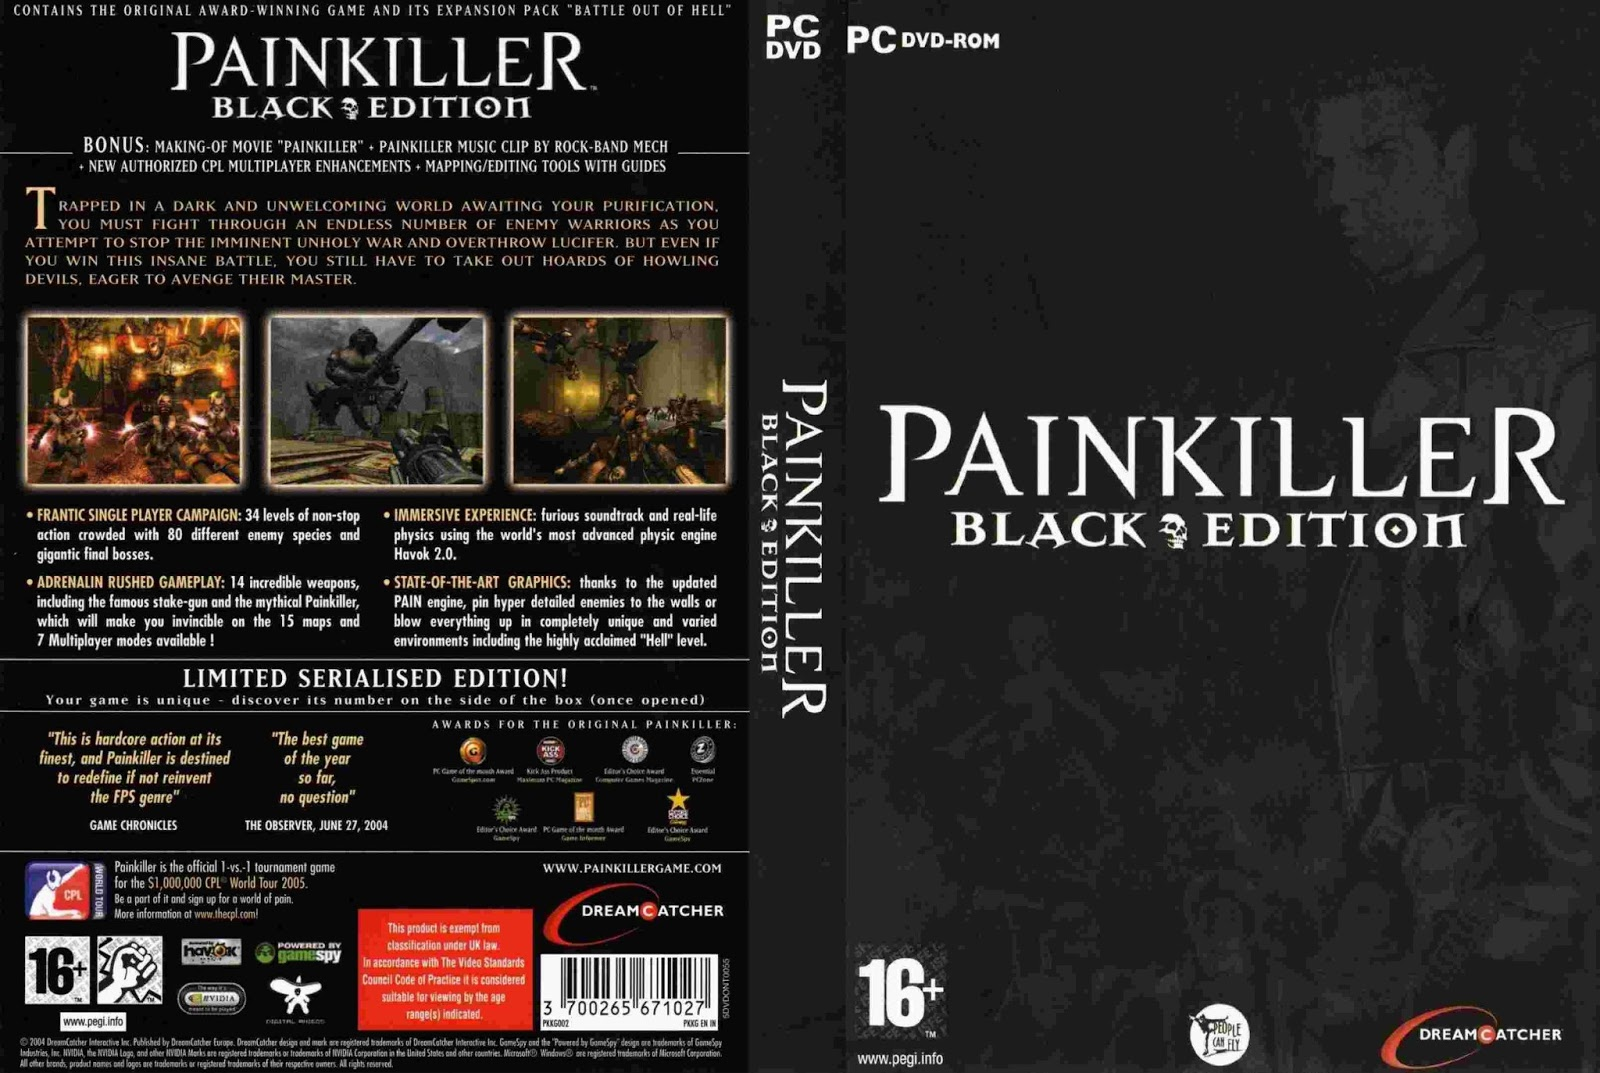 Req painkiller black edition pc review